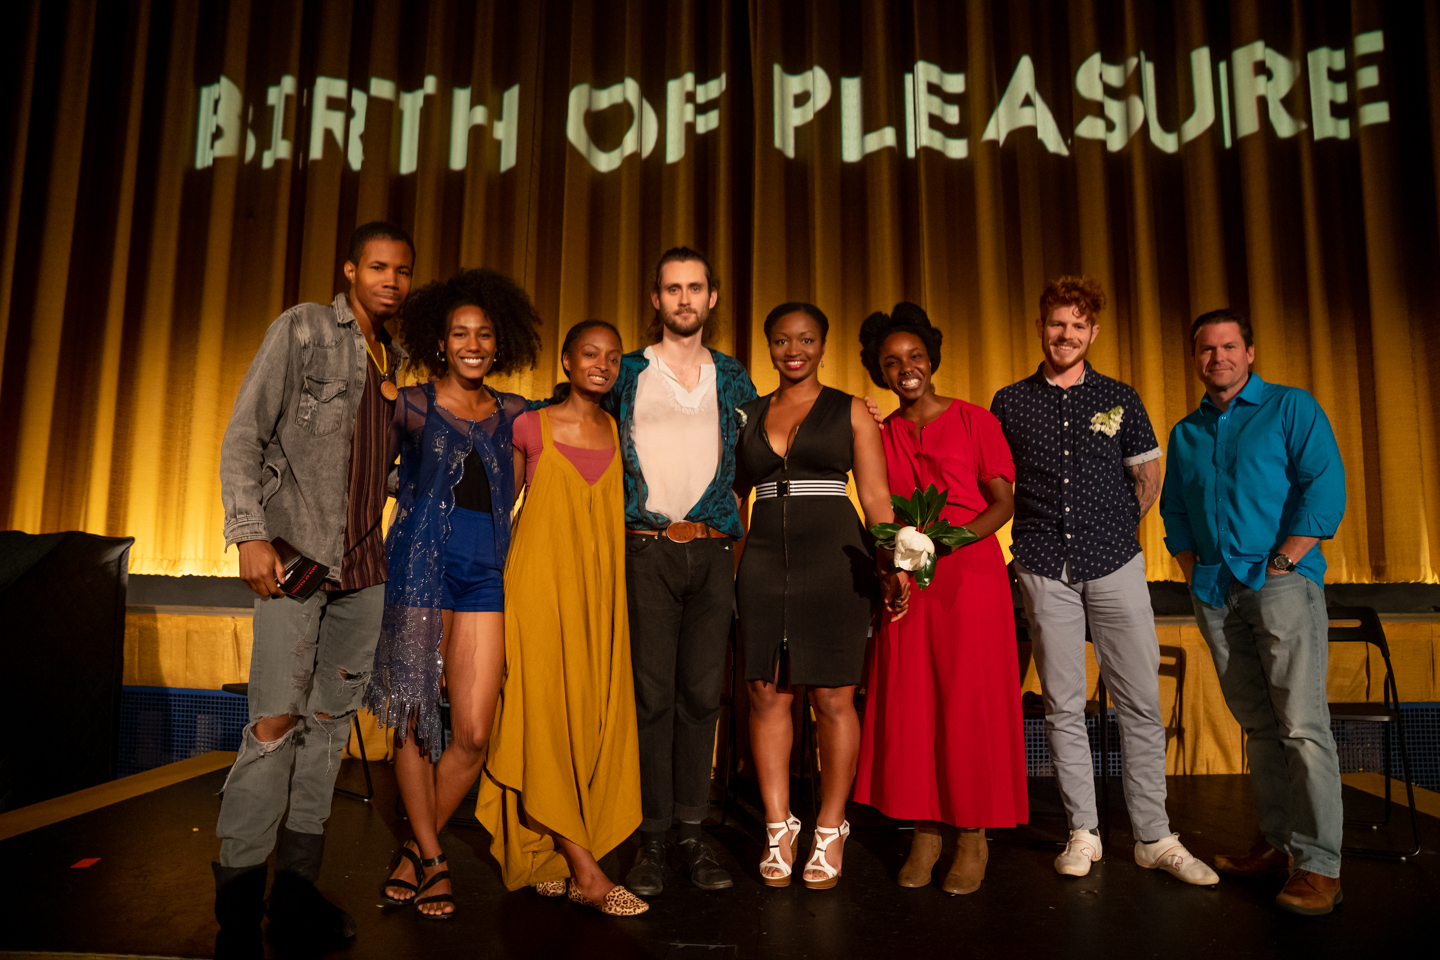 Birth of Pleasure - ATL Premiere